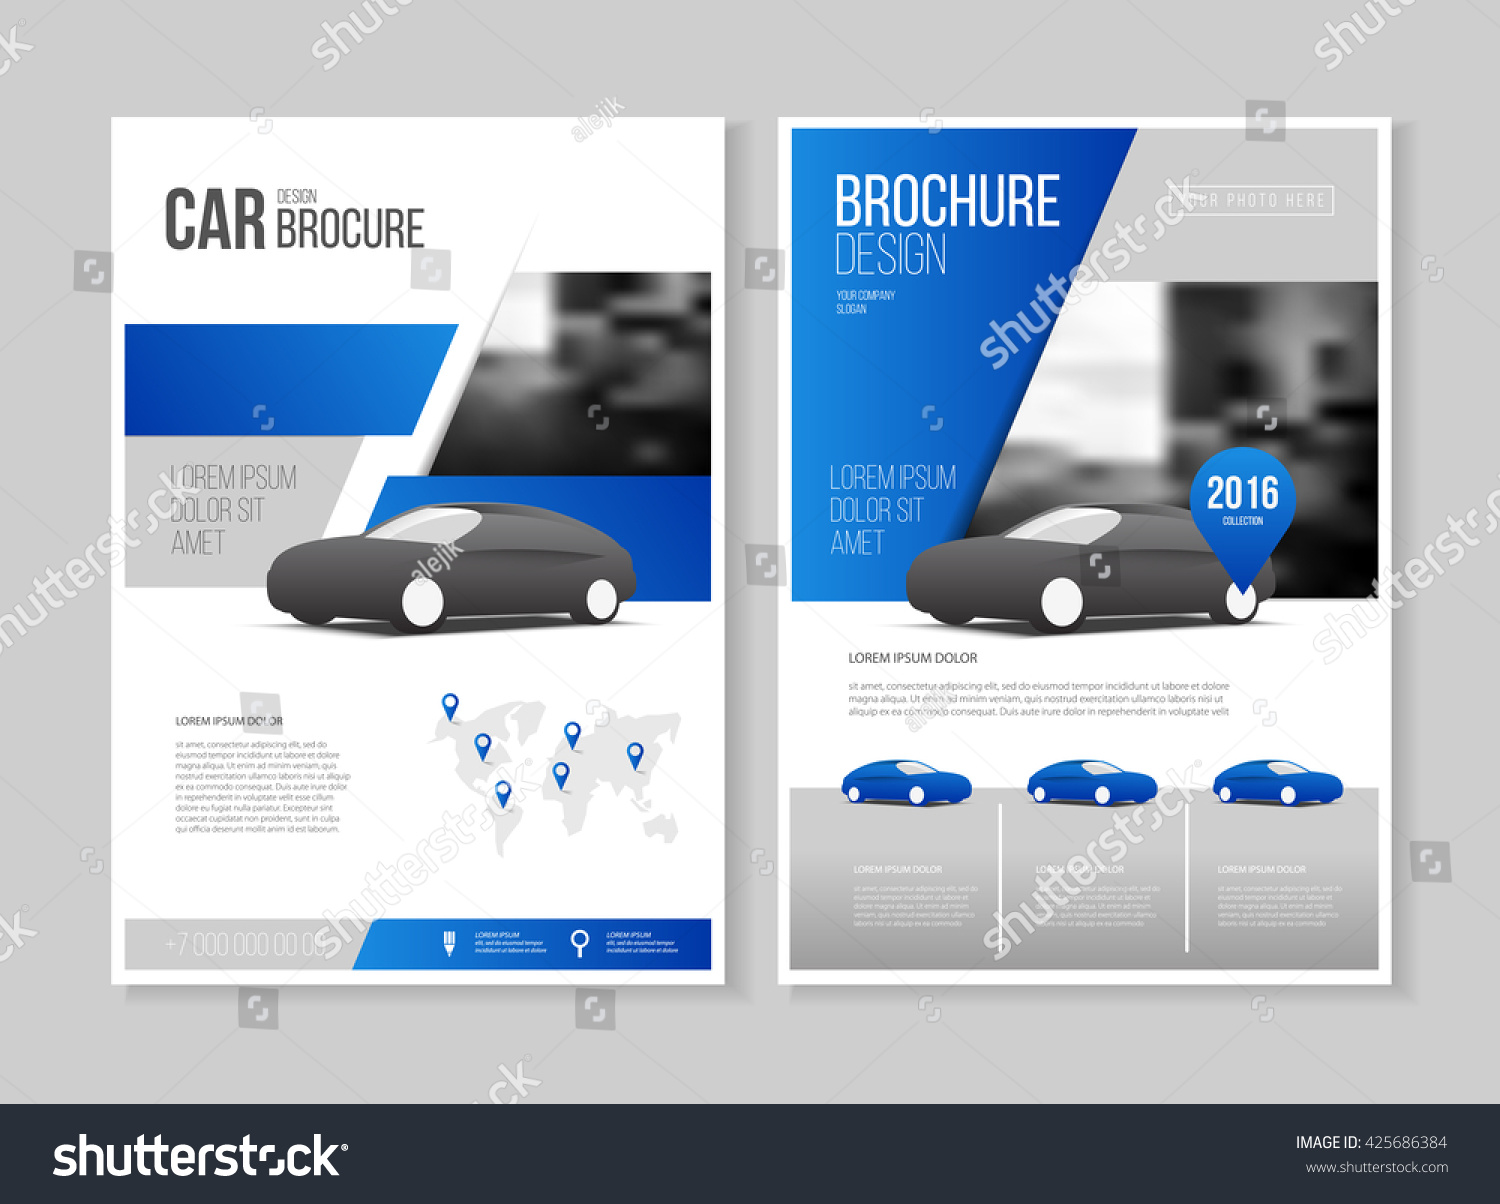 Auto repair business plan ppt example